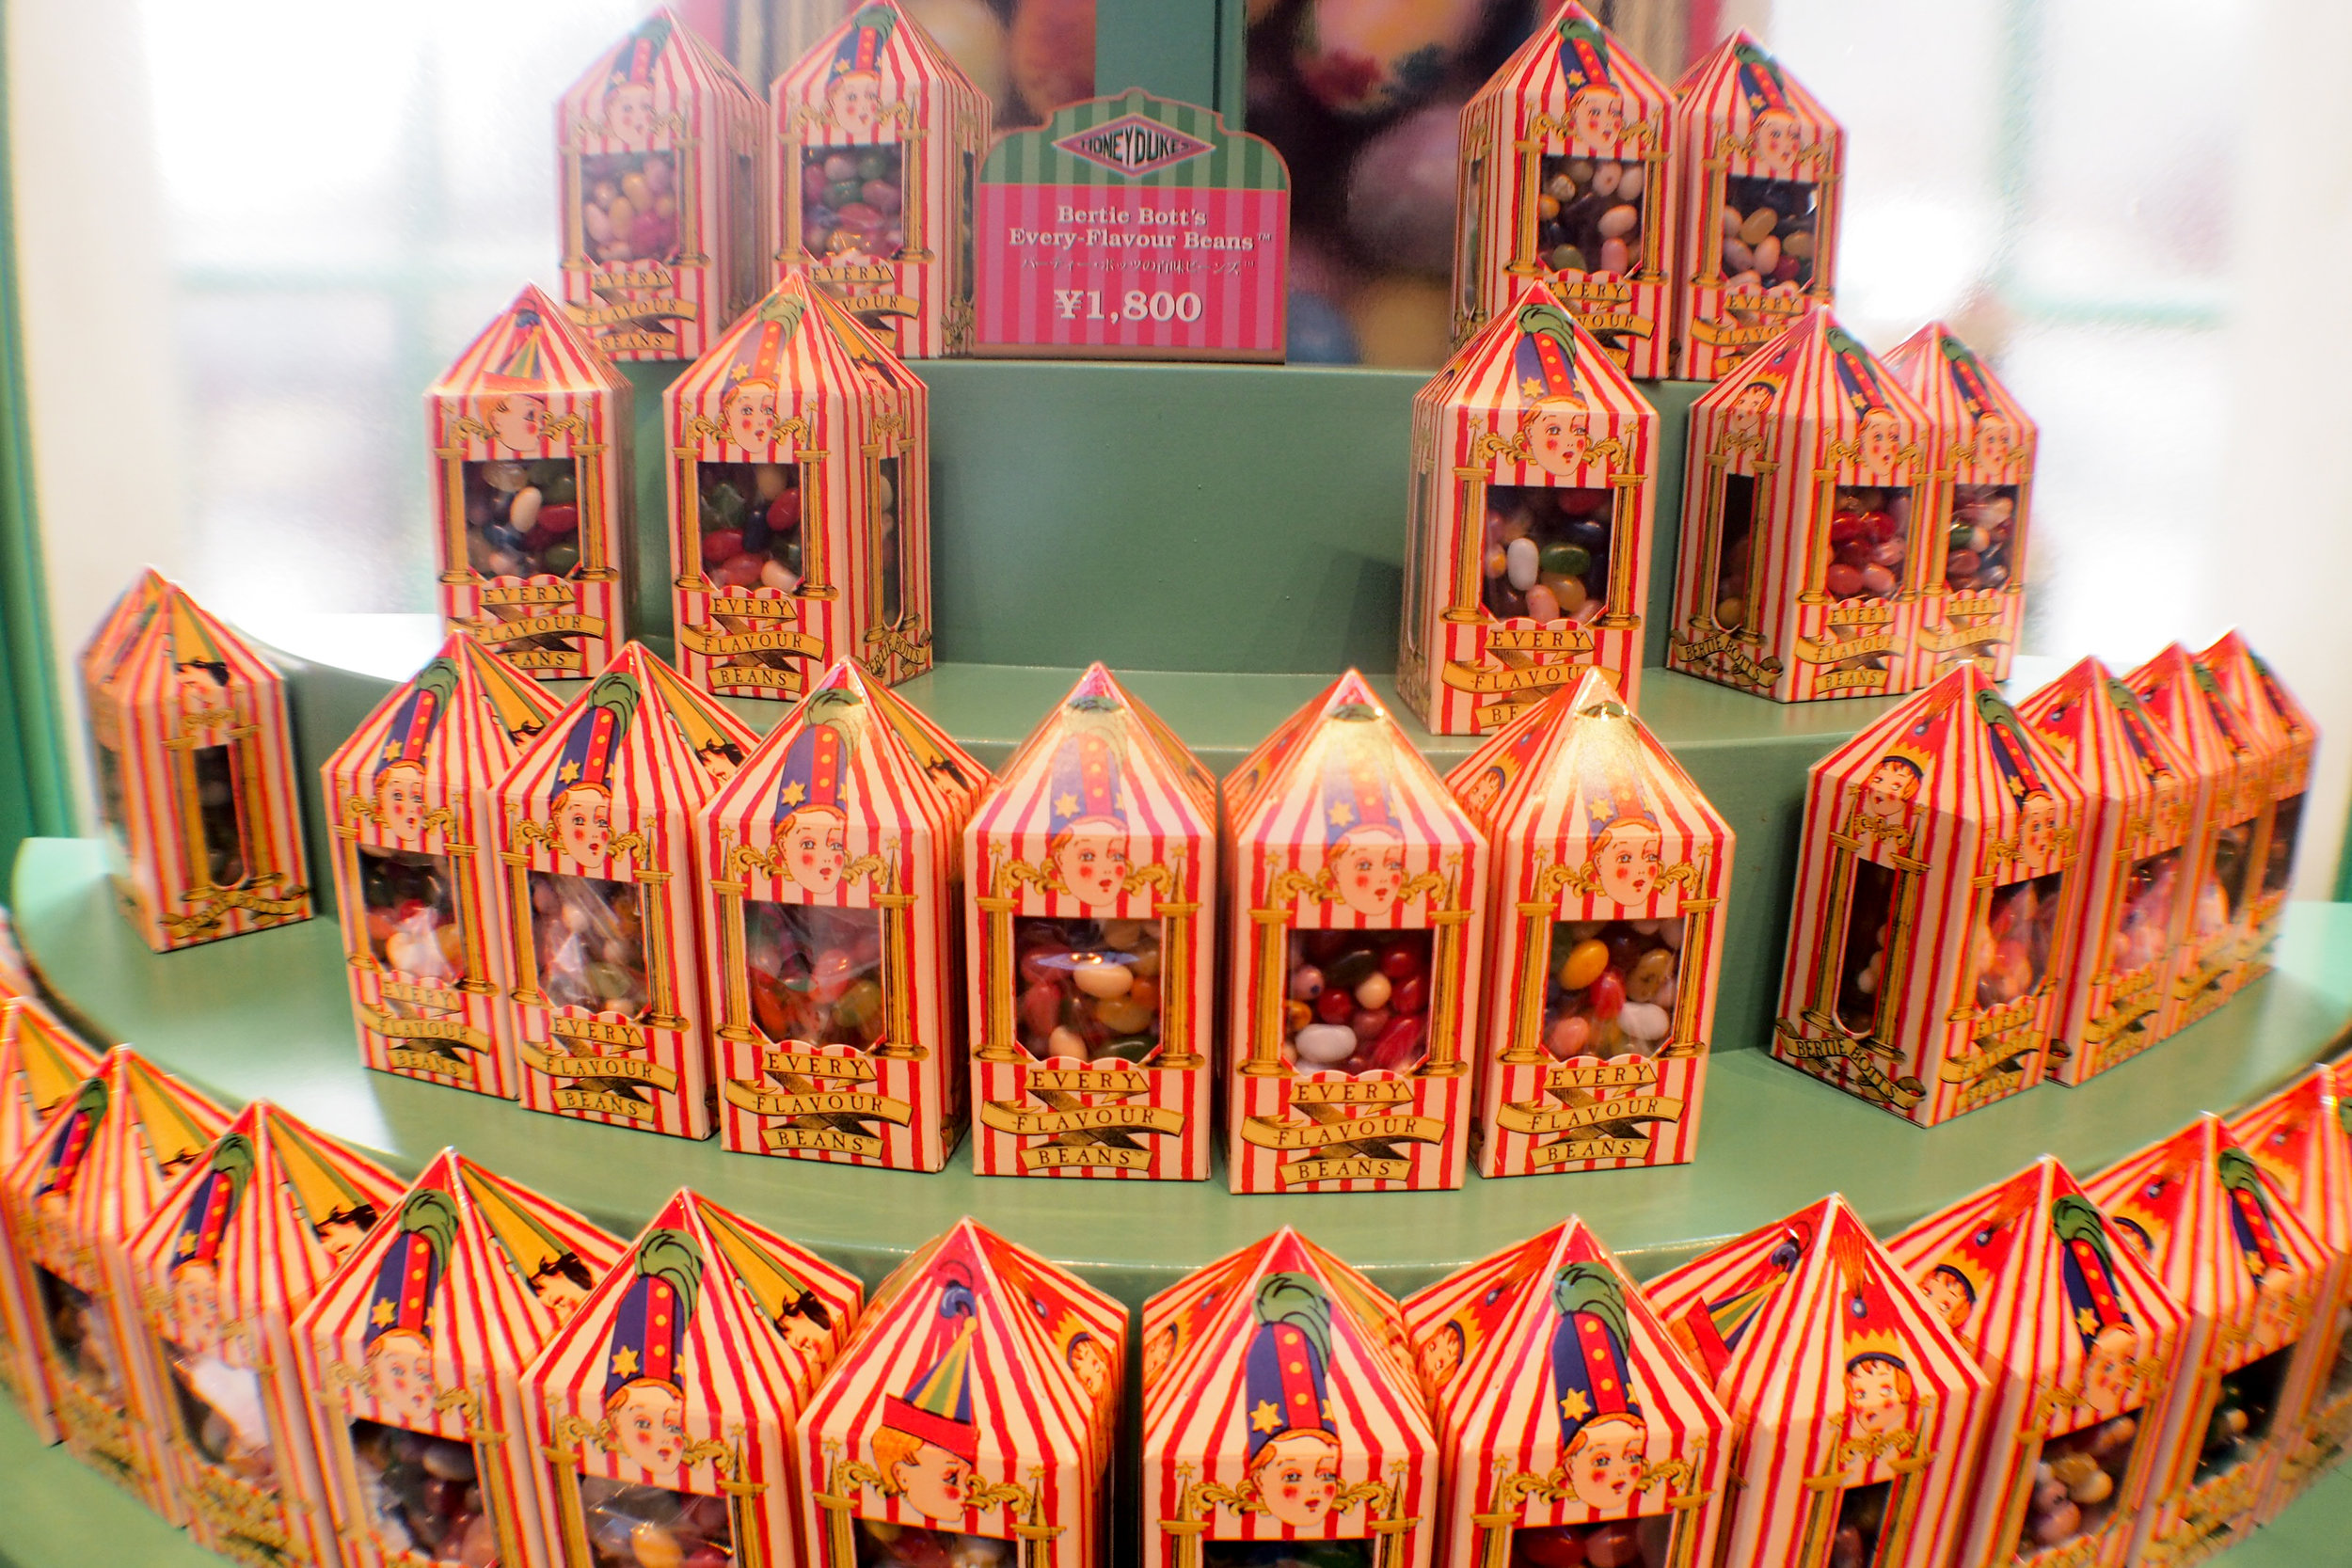 Bertie Bott's Every Flavour Beans! When they say every flavour, they mean every flavour.